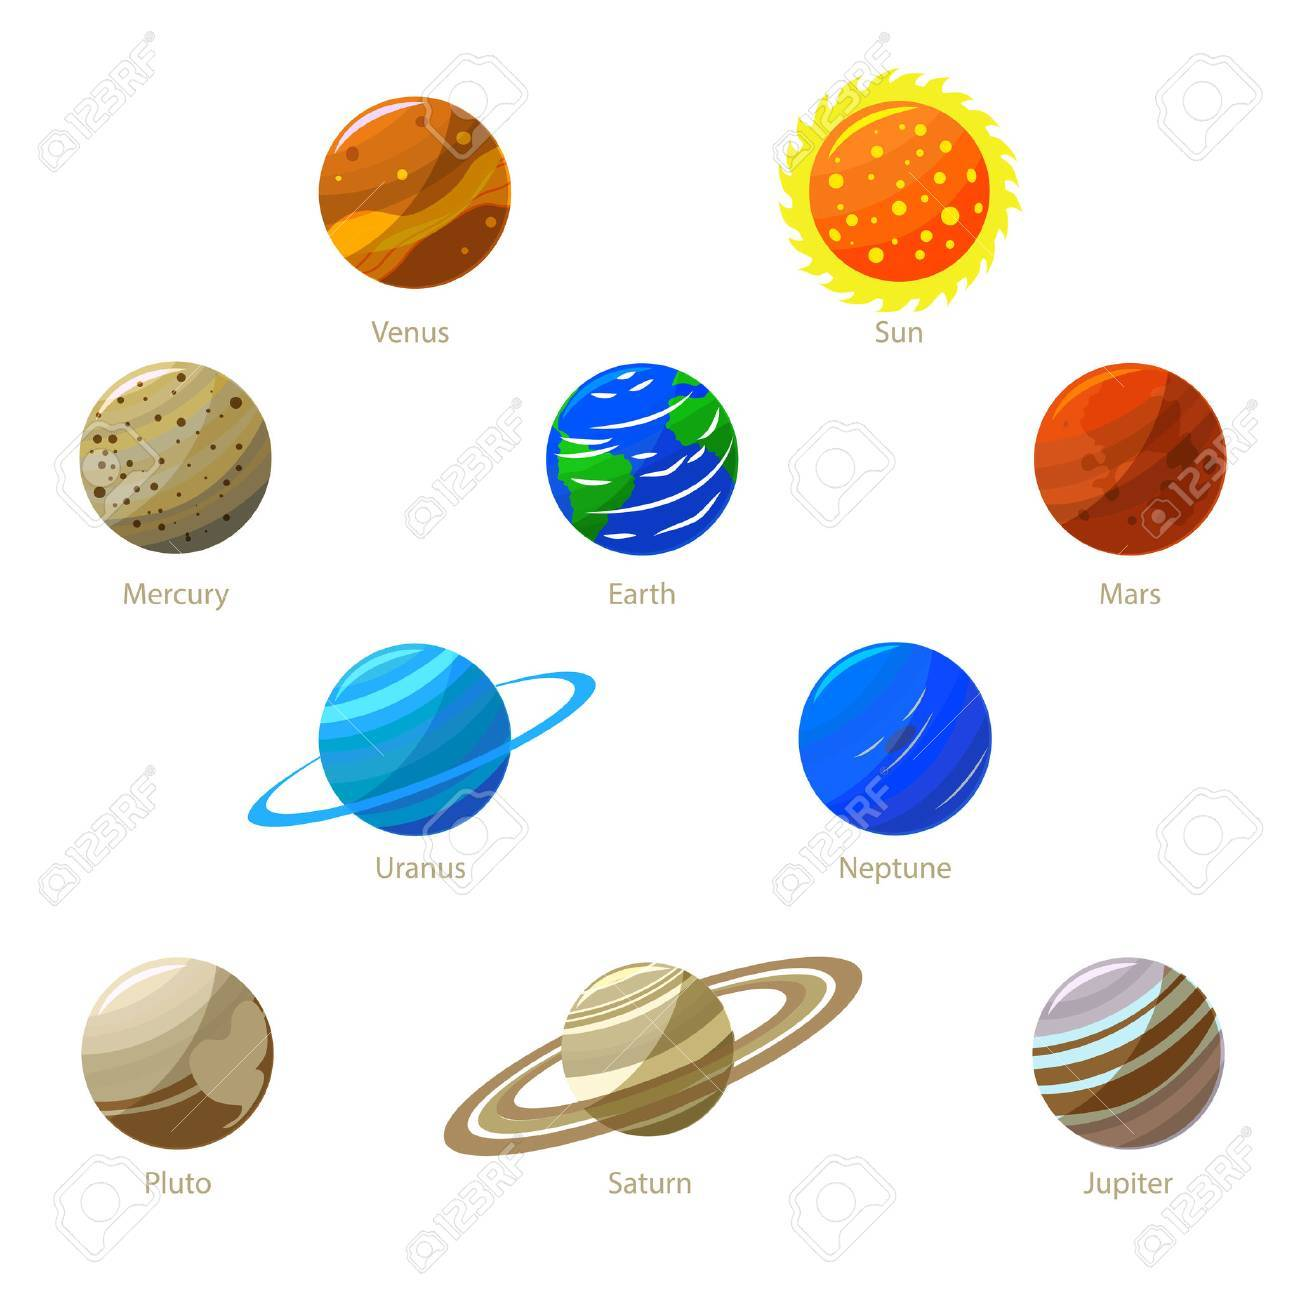 Colorful Solar System Planets and Sun. Flat Design Style. - 61330863